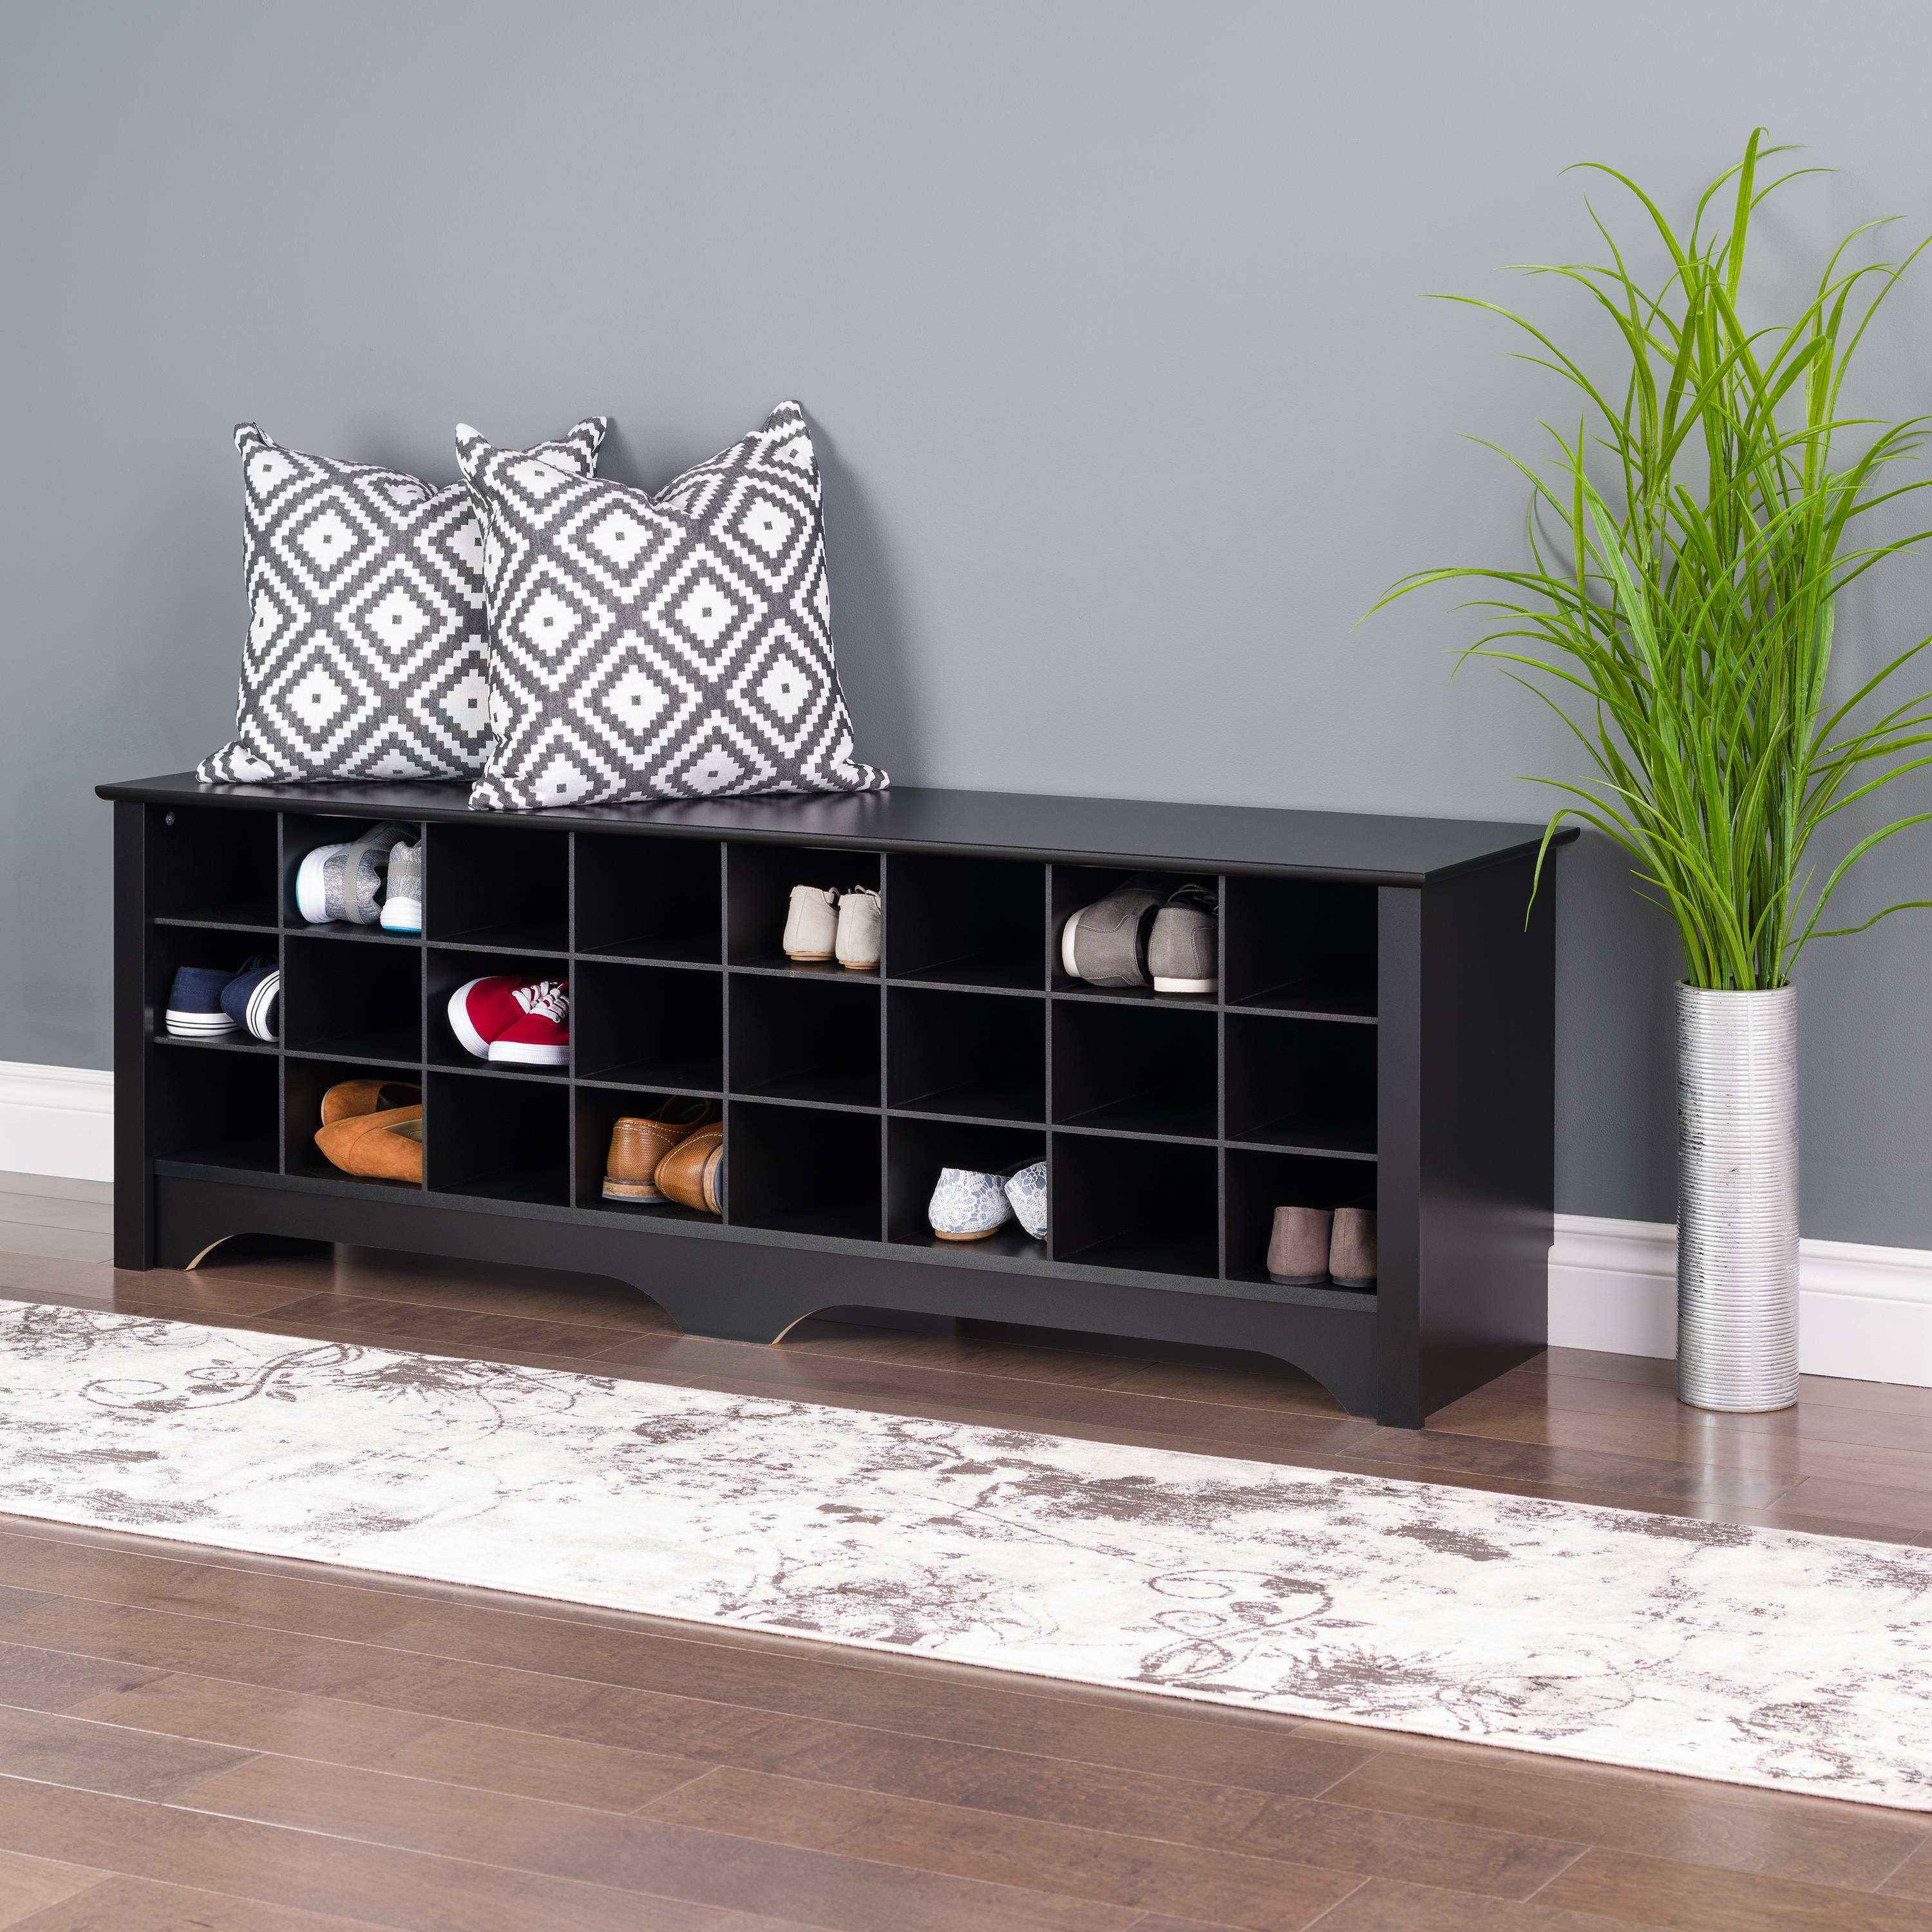 Magnificent 24 Pair Shoe Storage Cubby Bench By Prepac Evergreenethics Interior Chair Design Evergreenethicsorg